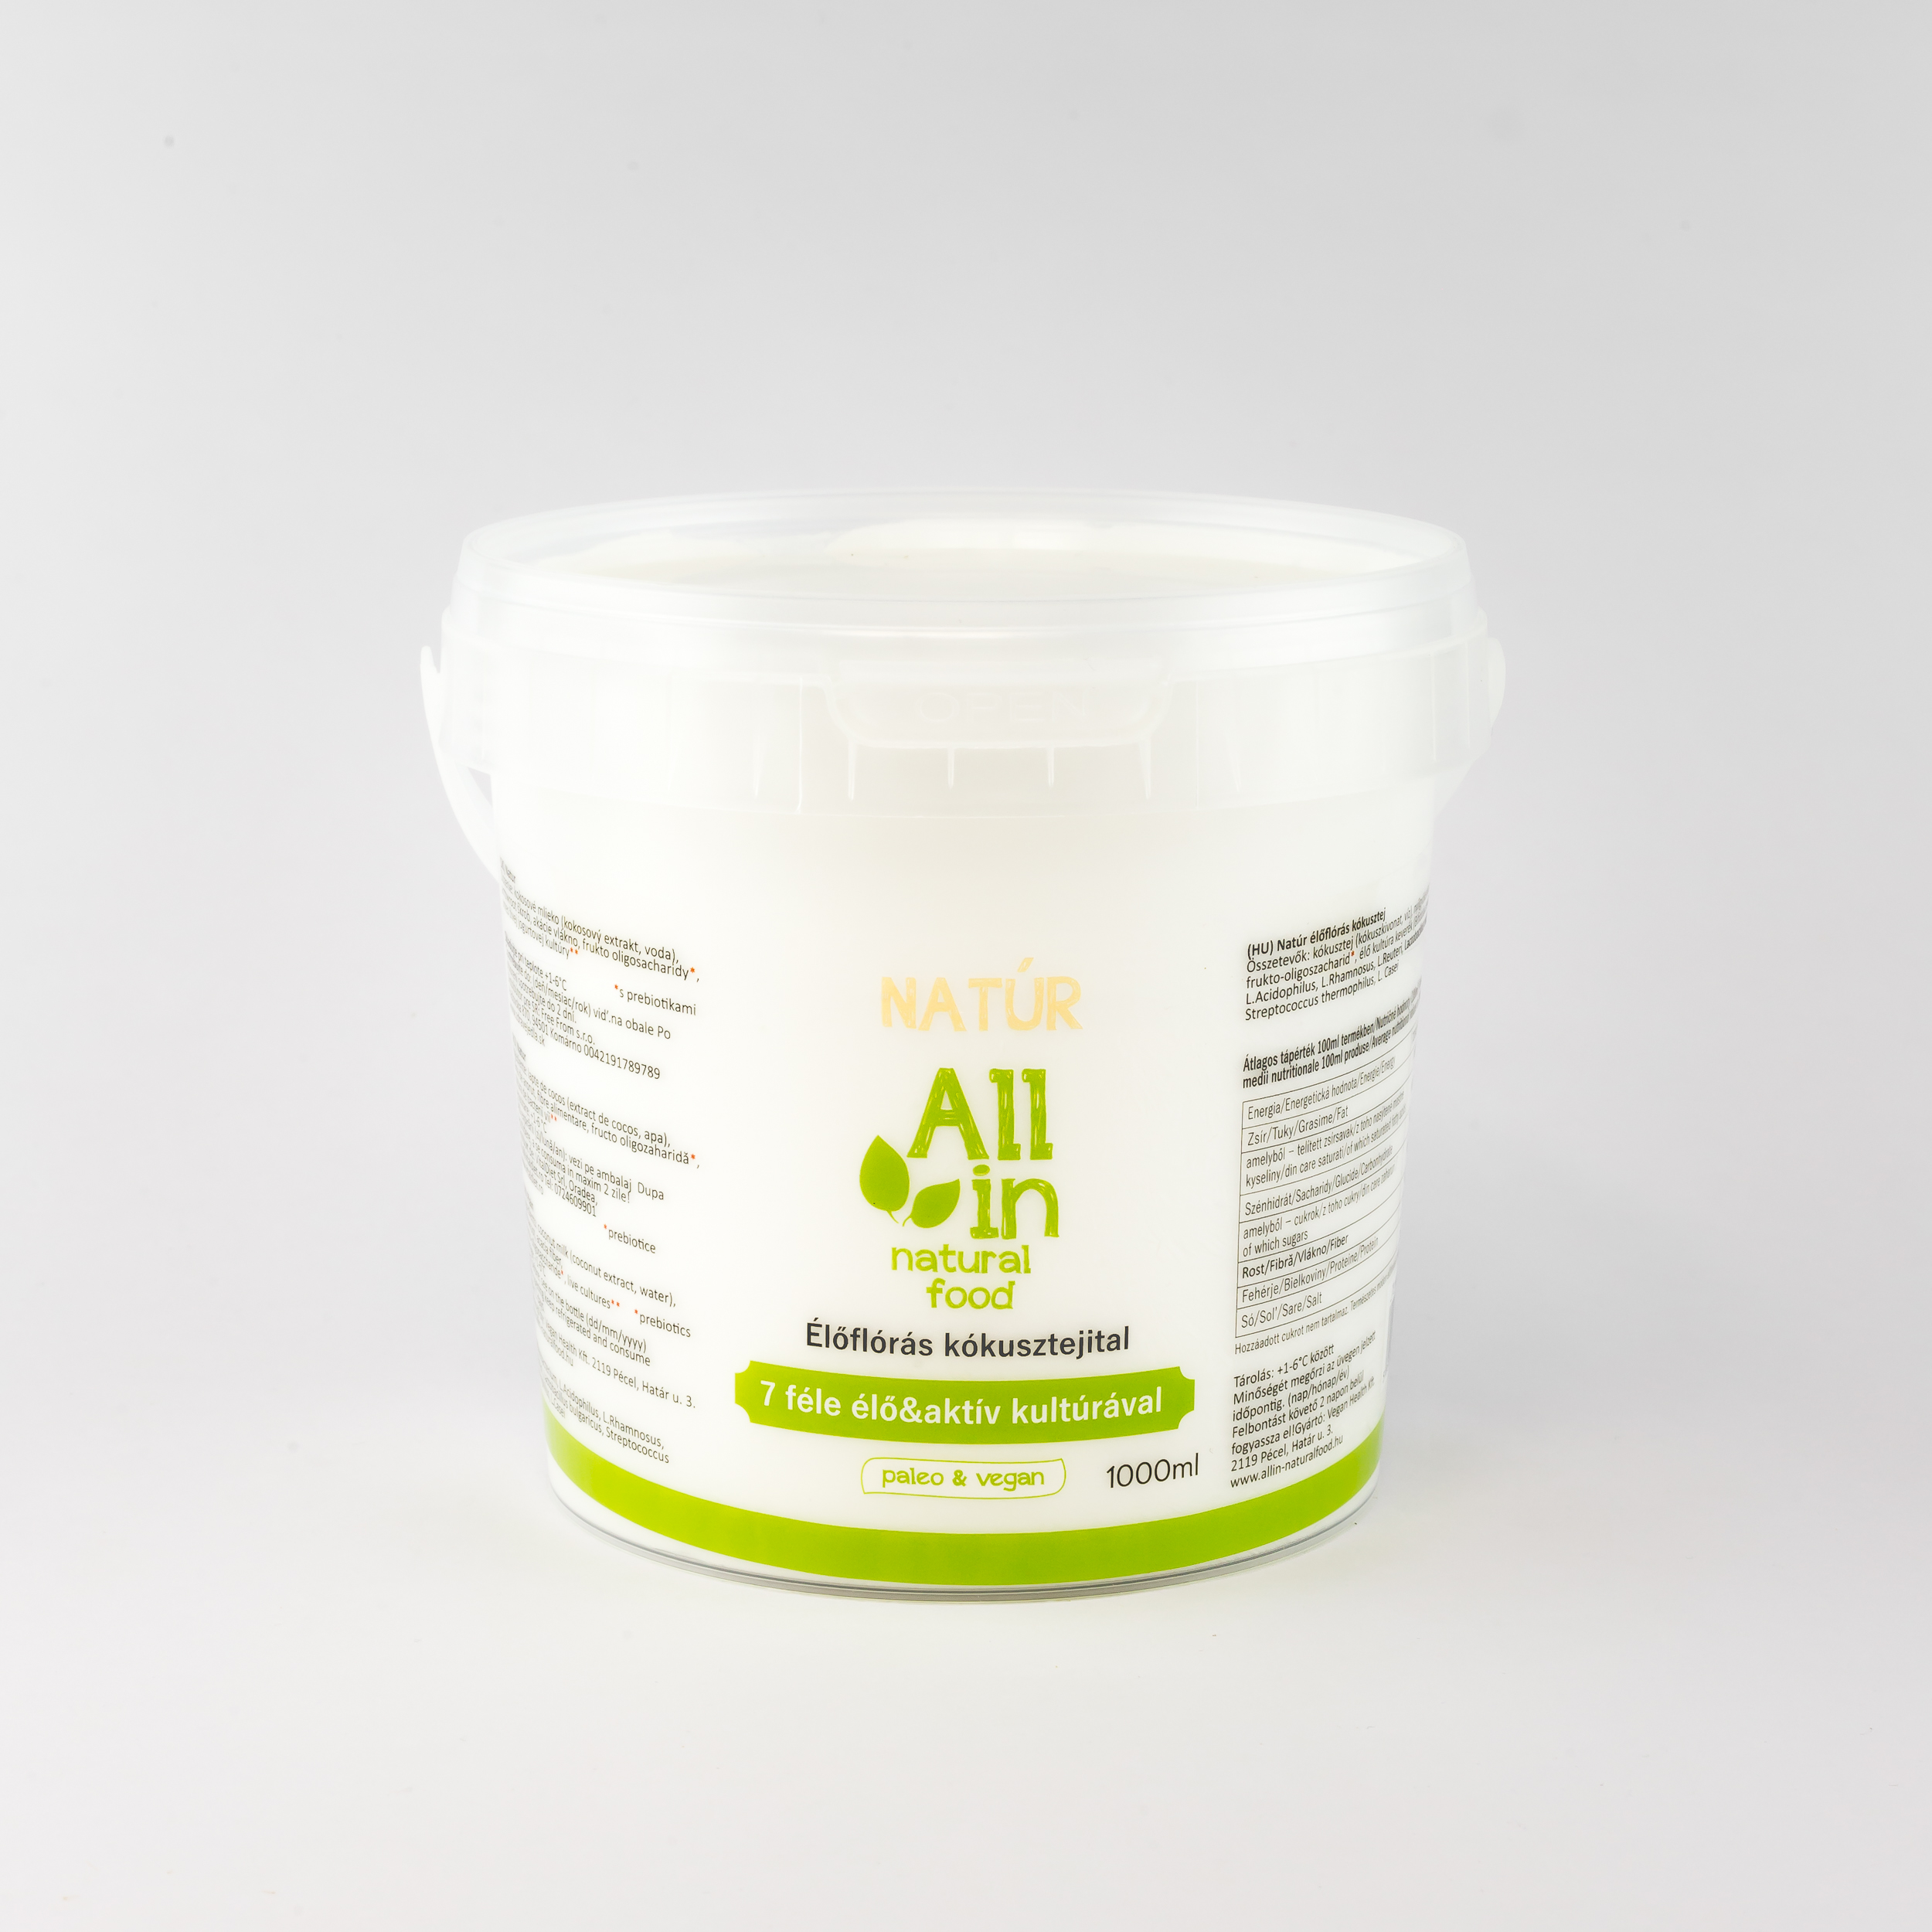 ALL IN natural food - Élőflórás kókuszjoghurt 1000ml